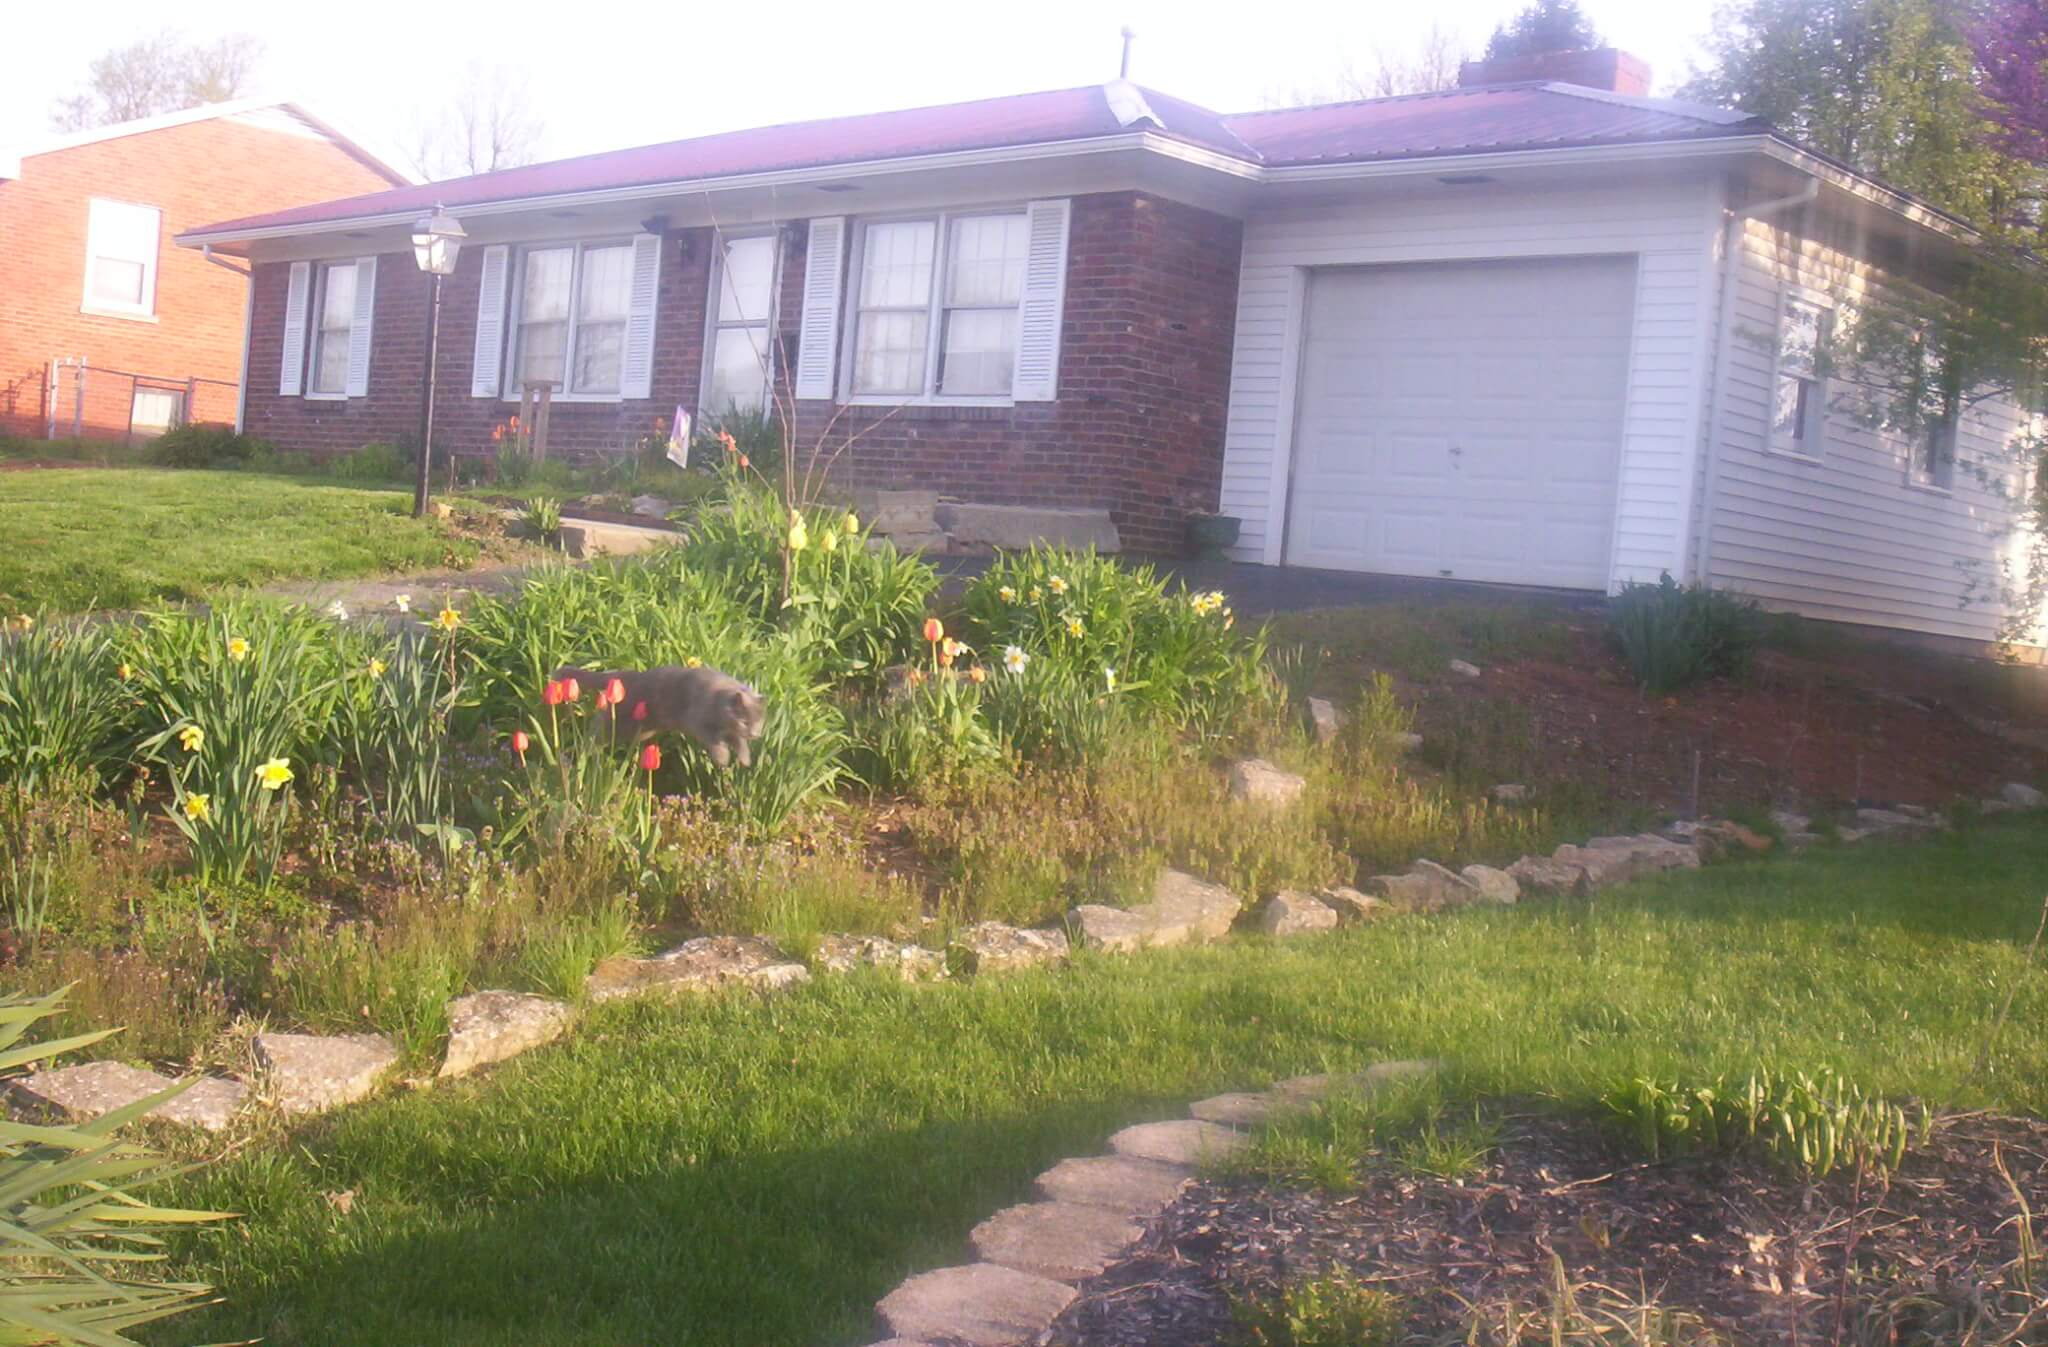 My house. Hattie, my cat, is jumping out of the flowerbed, by the way.